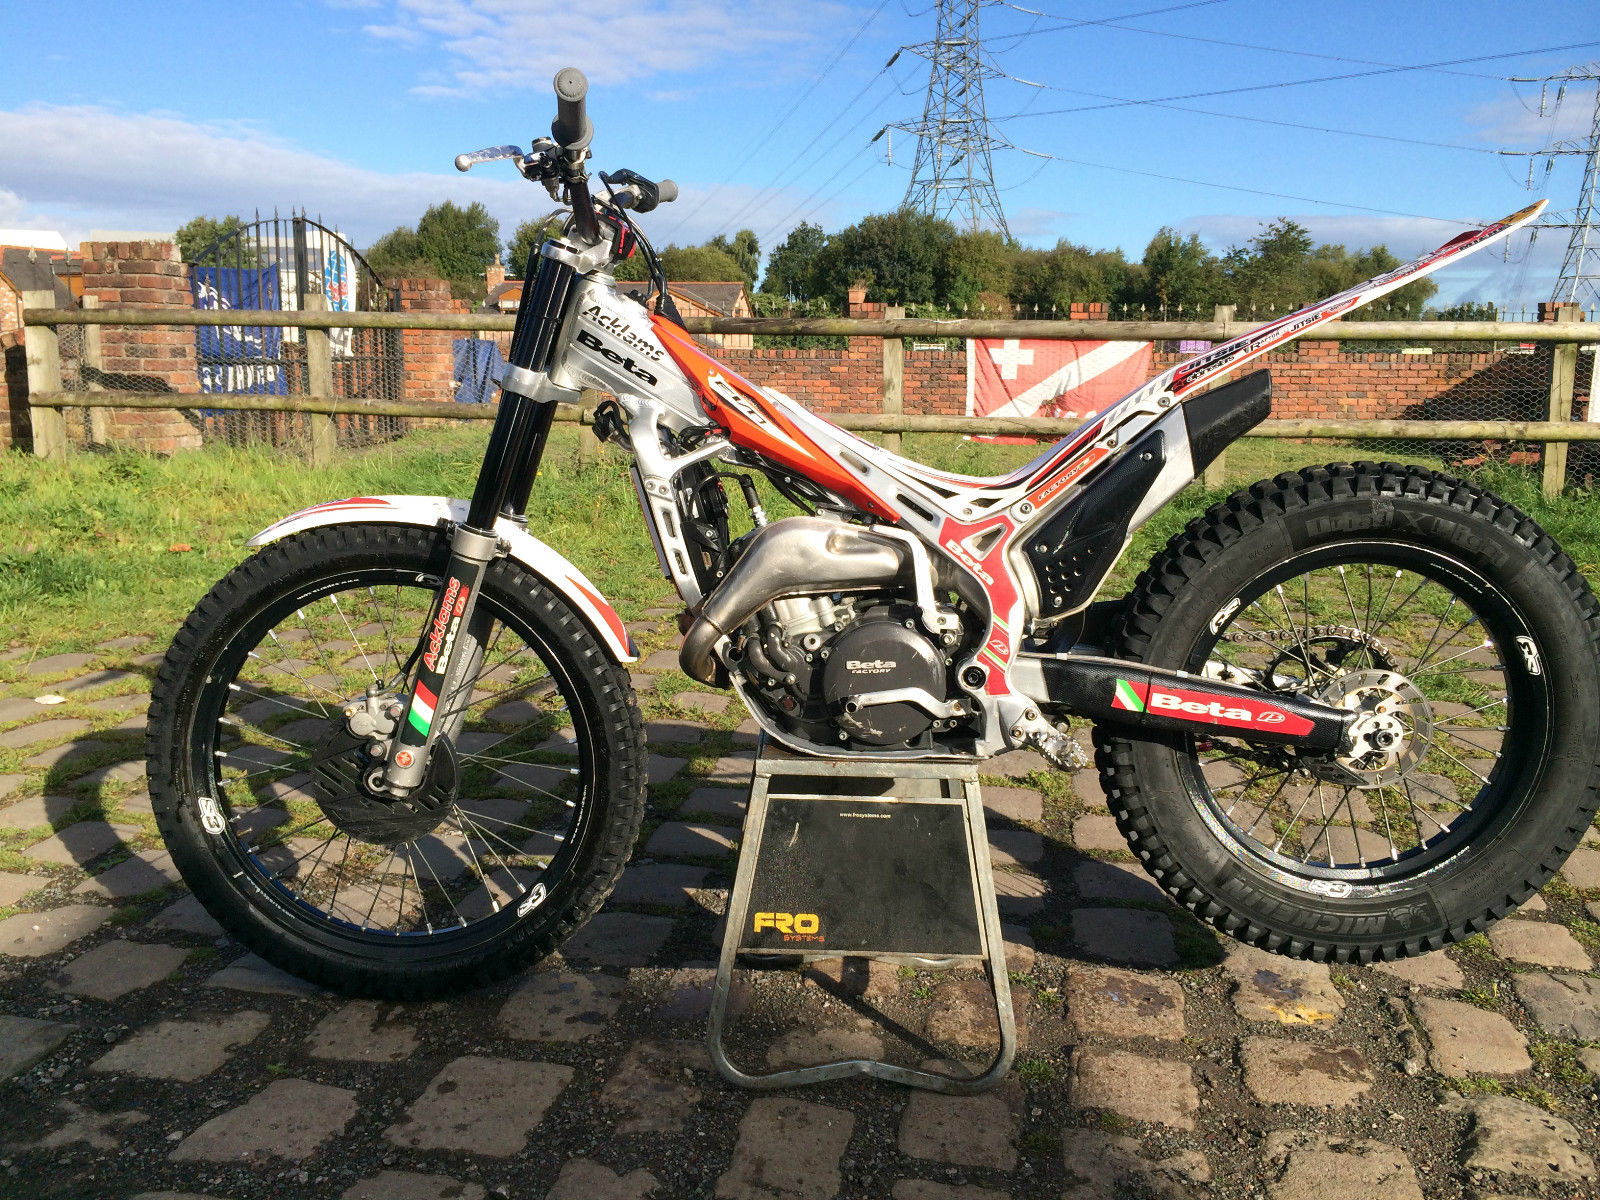 beta evo 290 2 stroke trials bike 2010 road registered rev